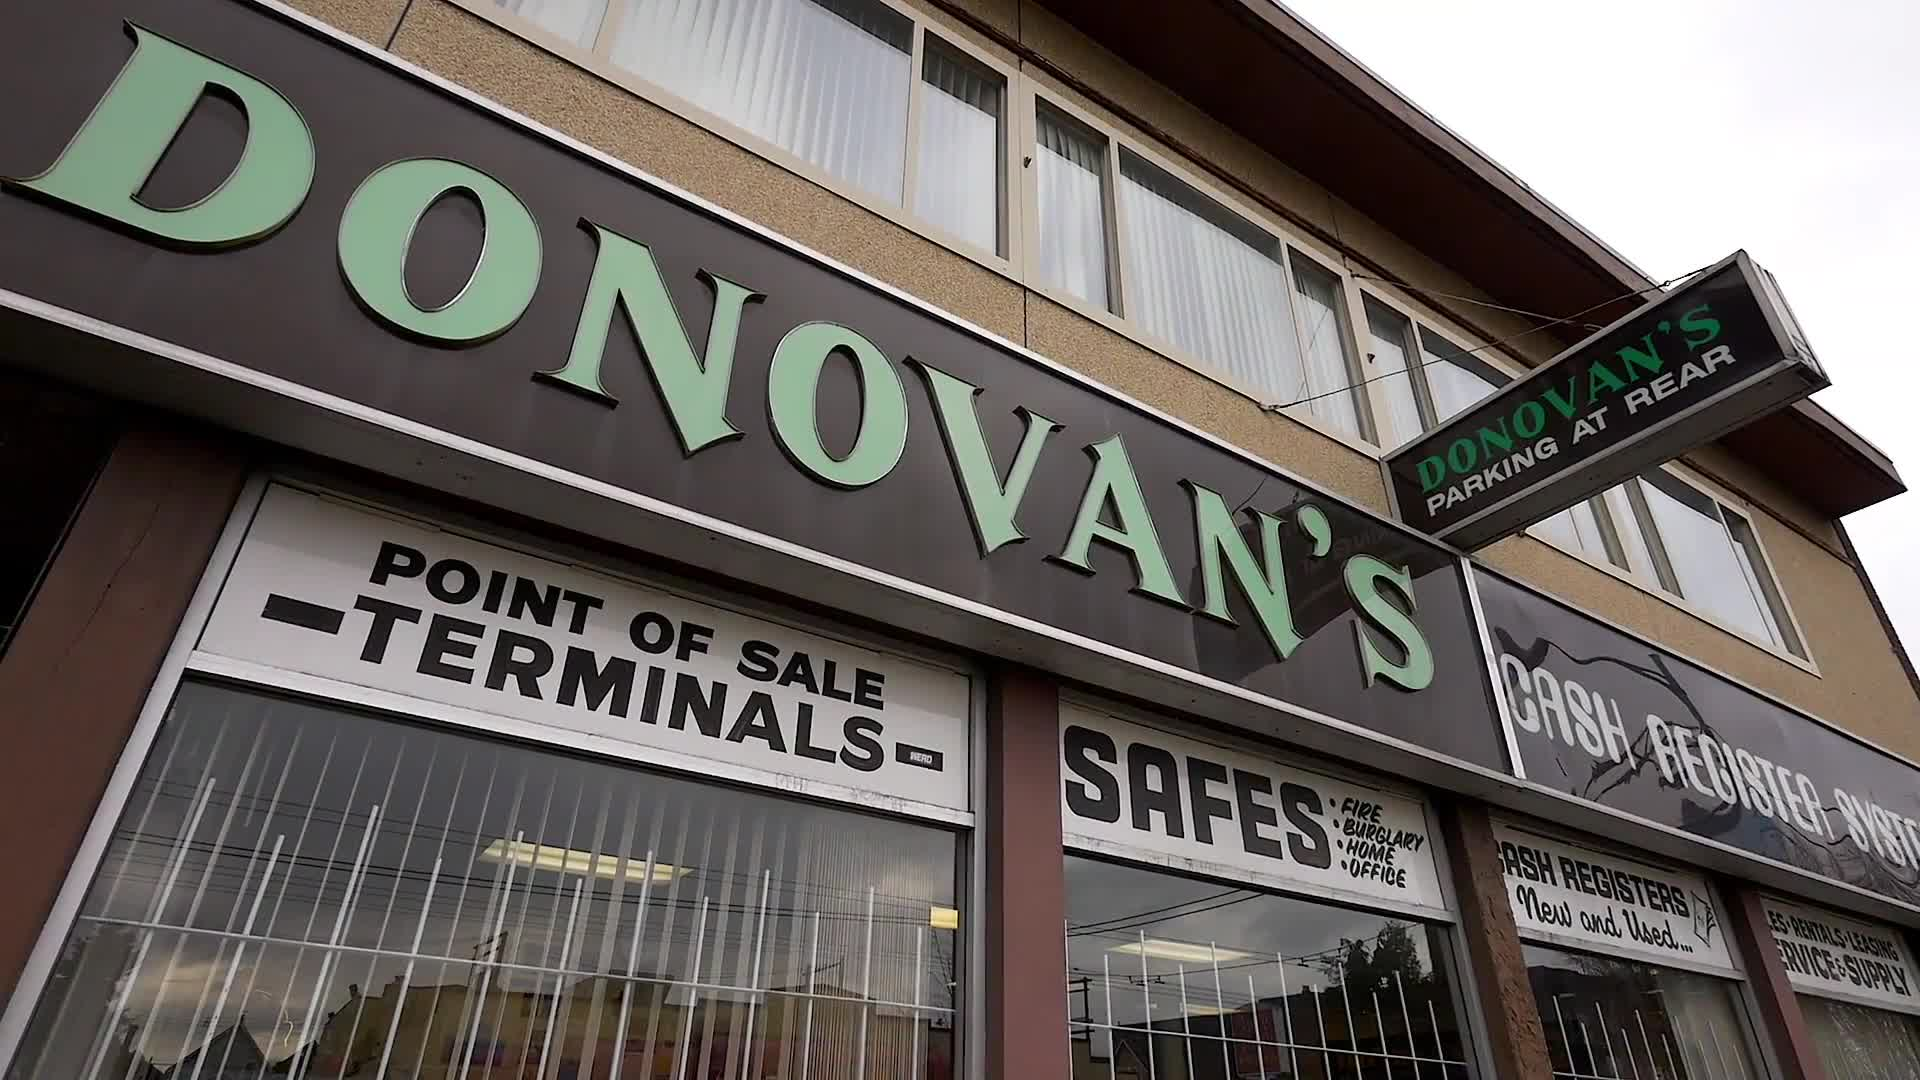 Donovan Sales Ltd - Safes & Vaults - 604-254-4777